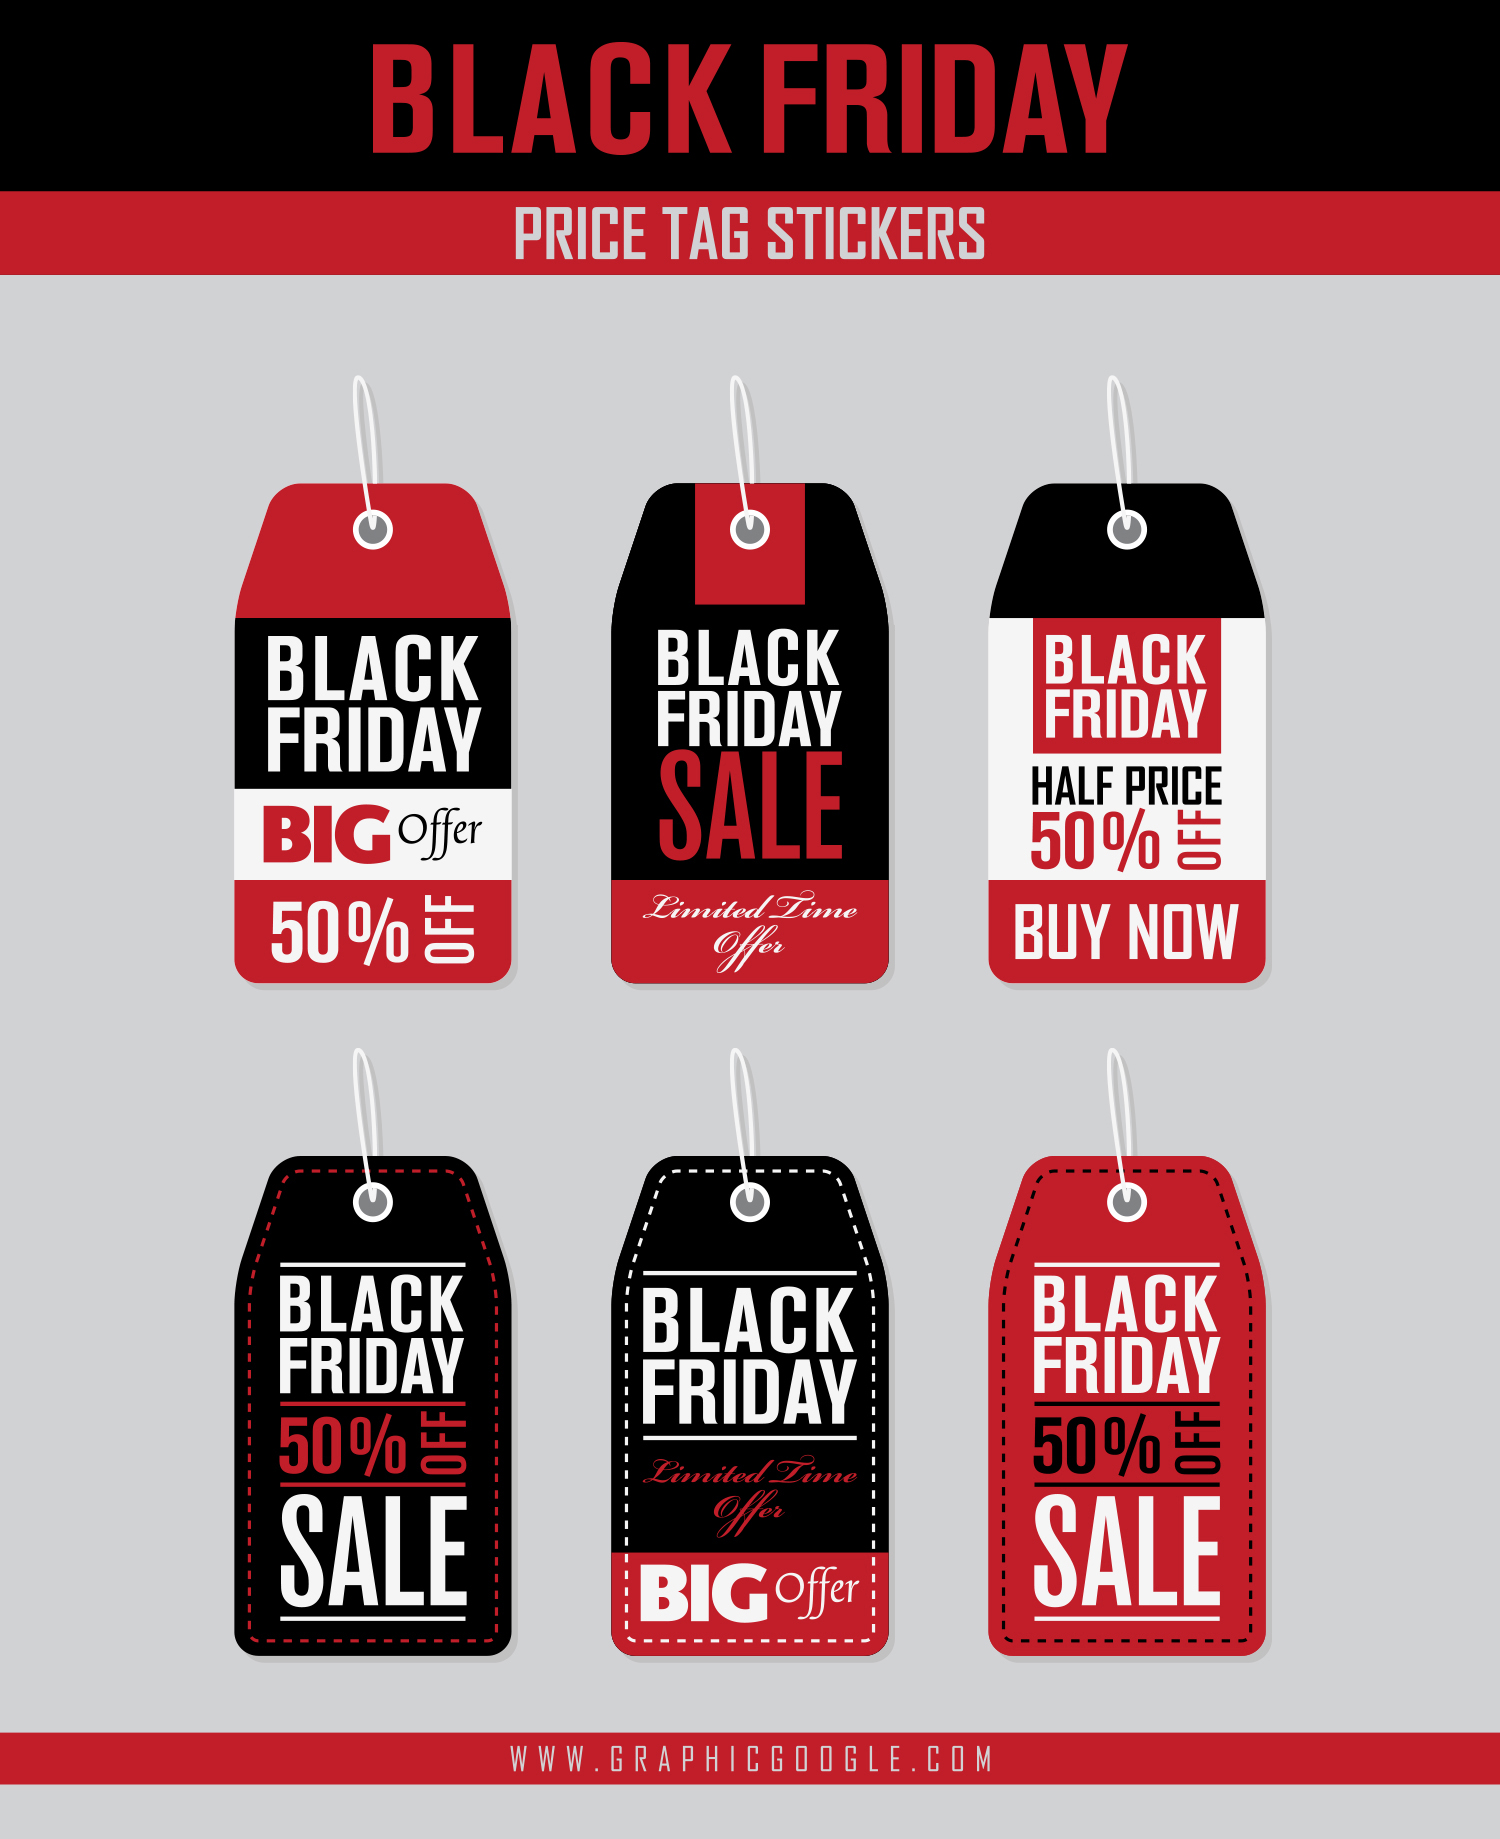 Free-Black-Friday-Price-Tag-Stickers